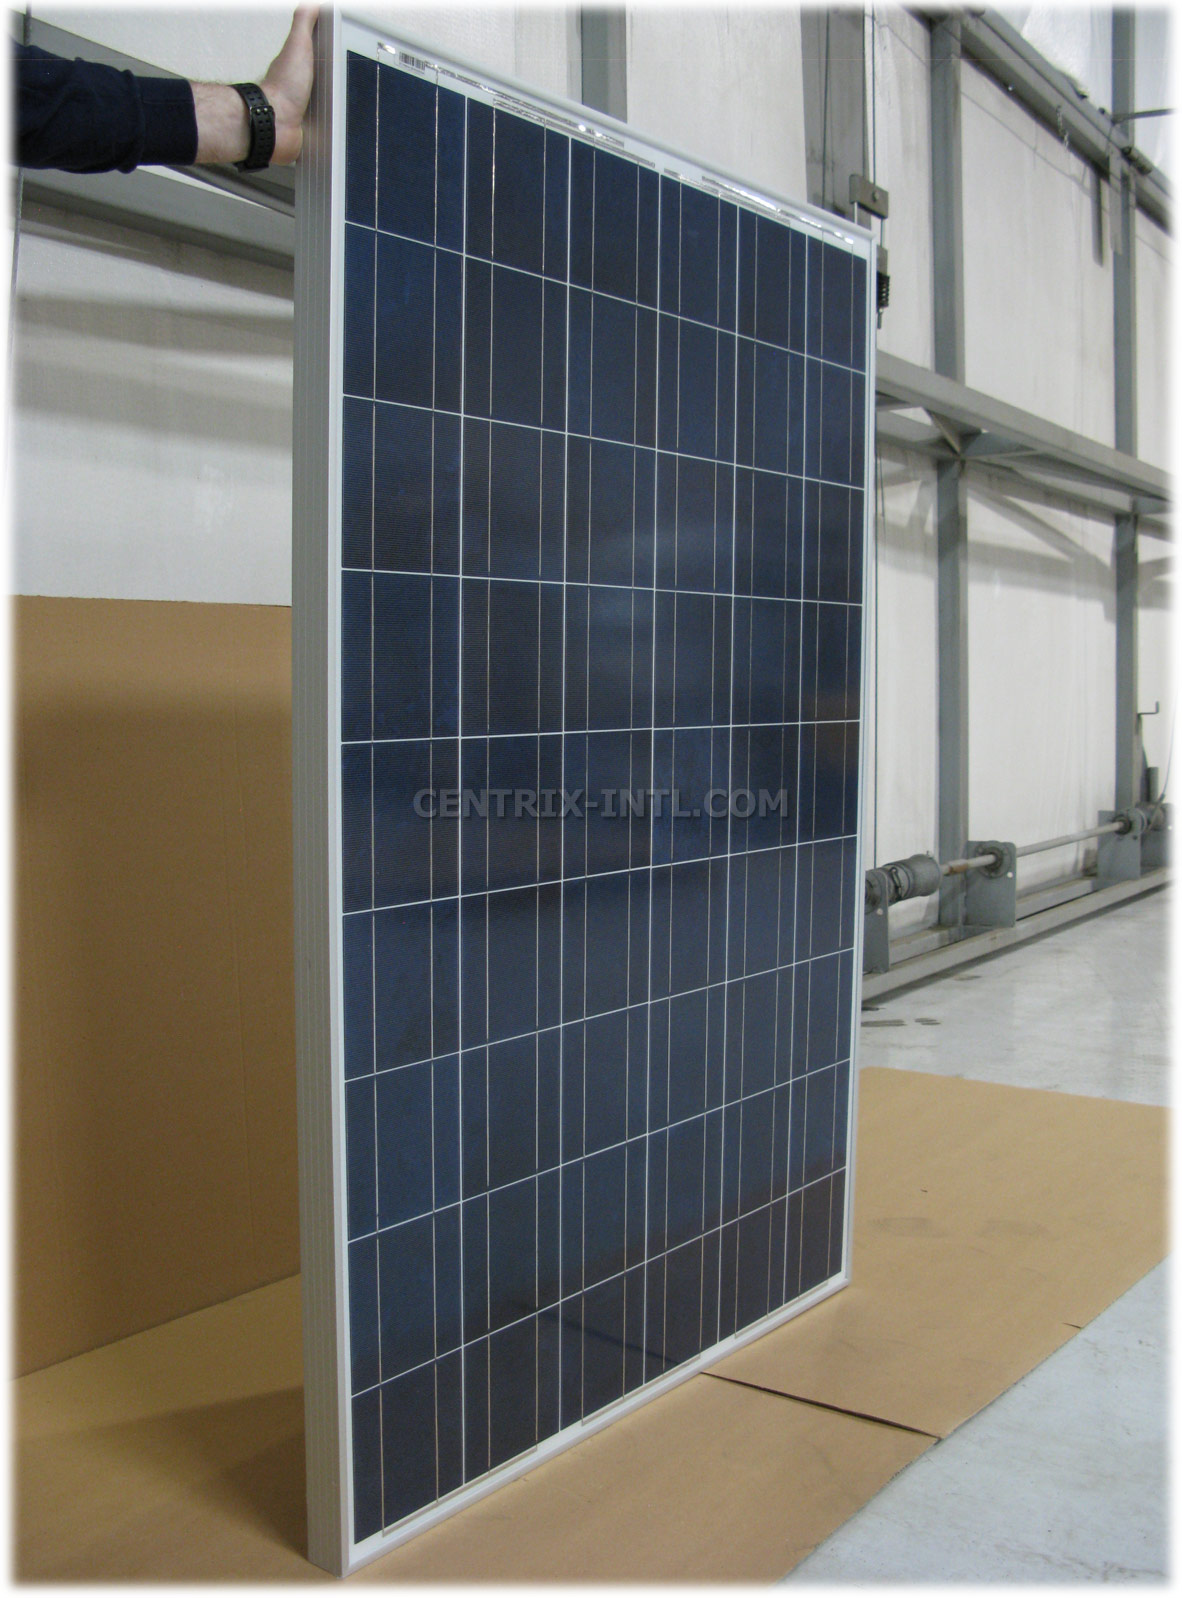 Et Solar Group Et P654210 210w Solar Panel Ships By